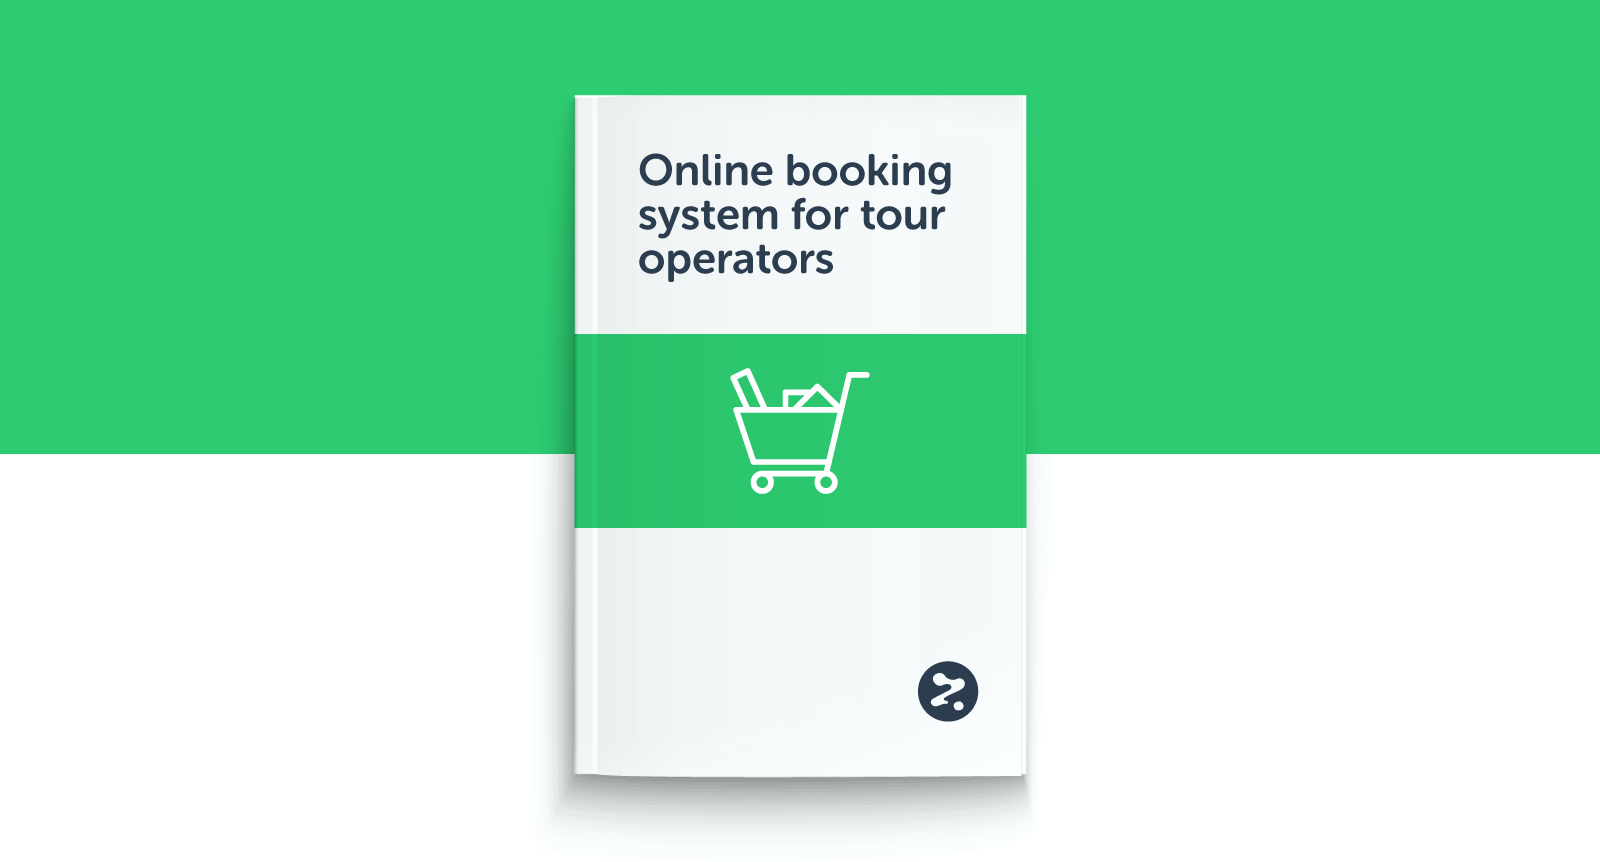 Best Booking Software for Tour Operators - Buyer's Guide